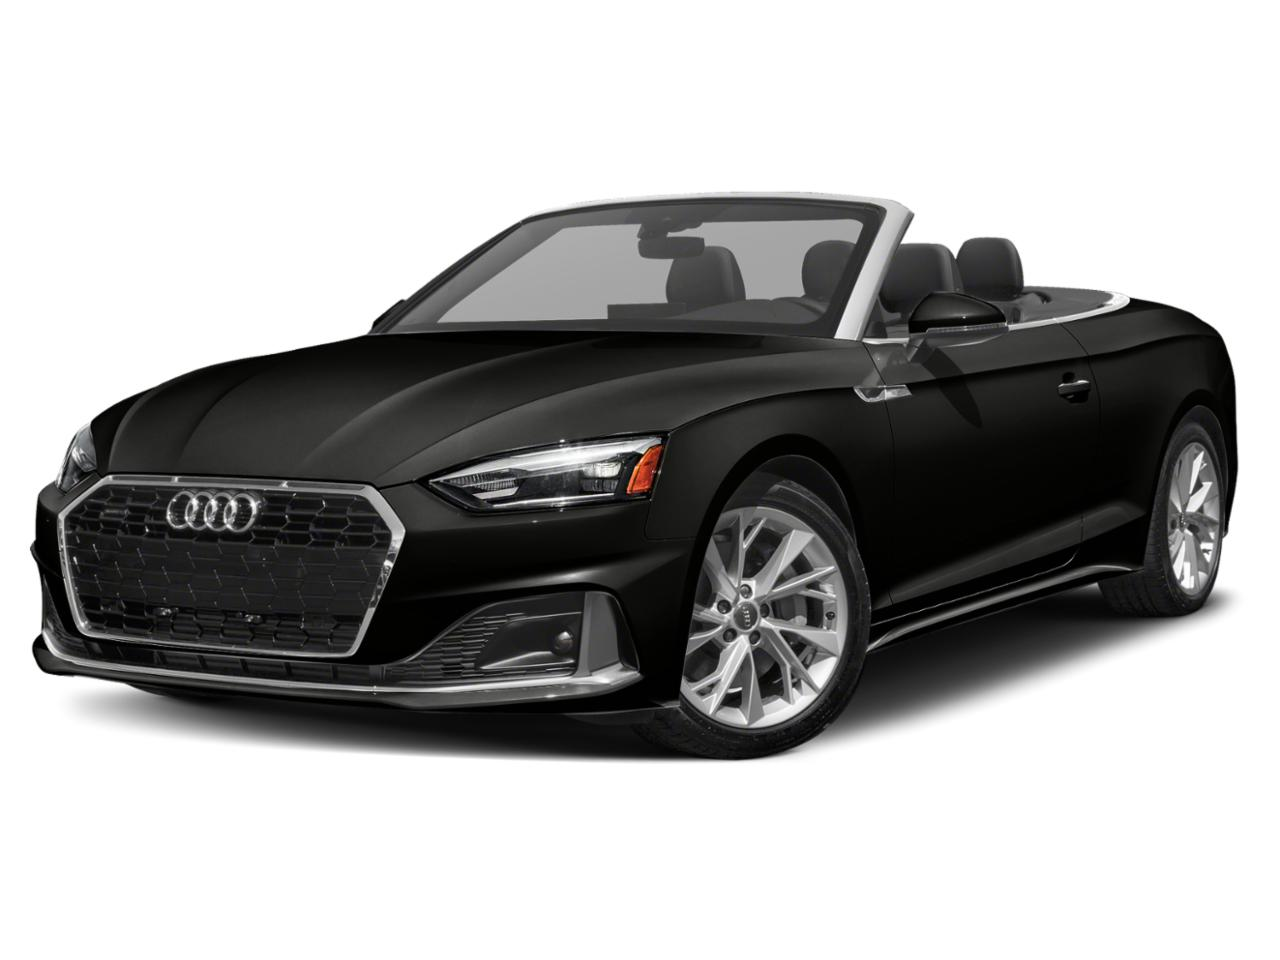 2021 Audi A5 Cabriolet Vehicle Photo in Sugar Land, TX 77478